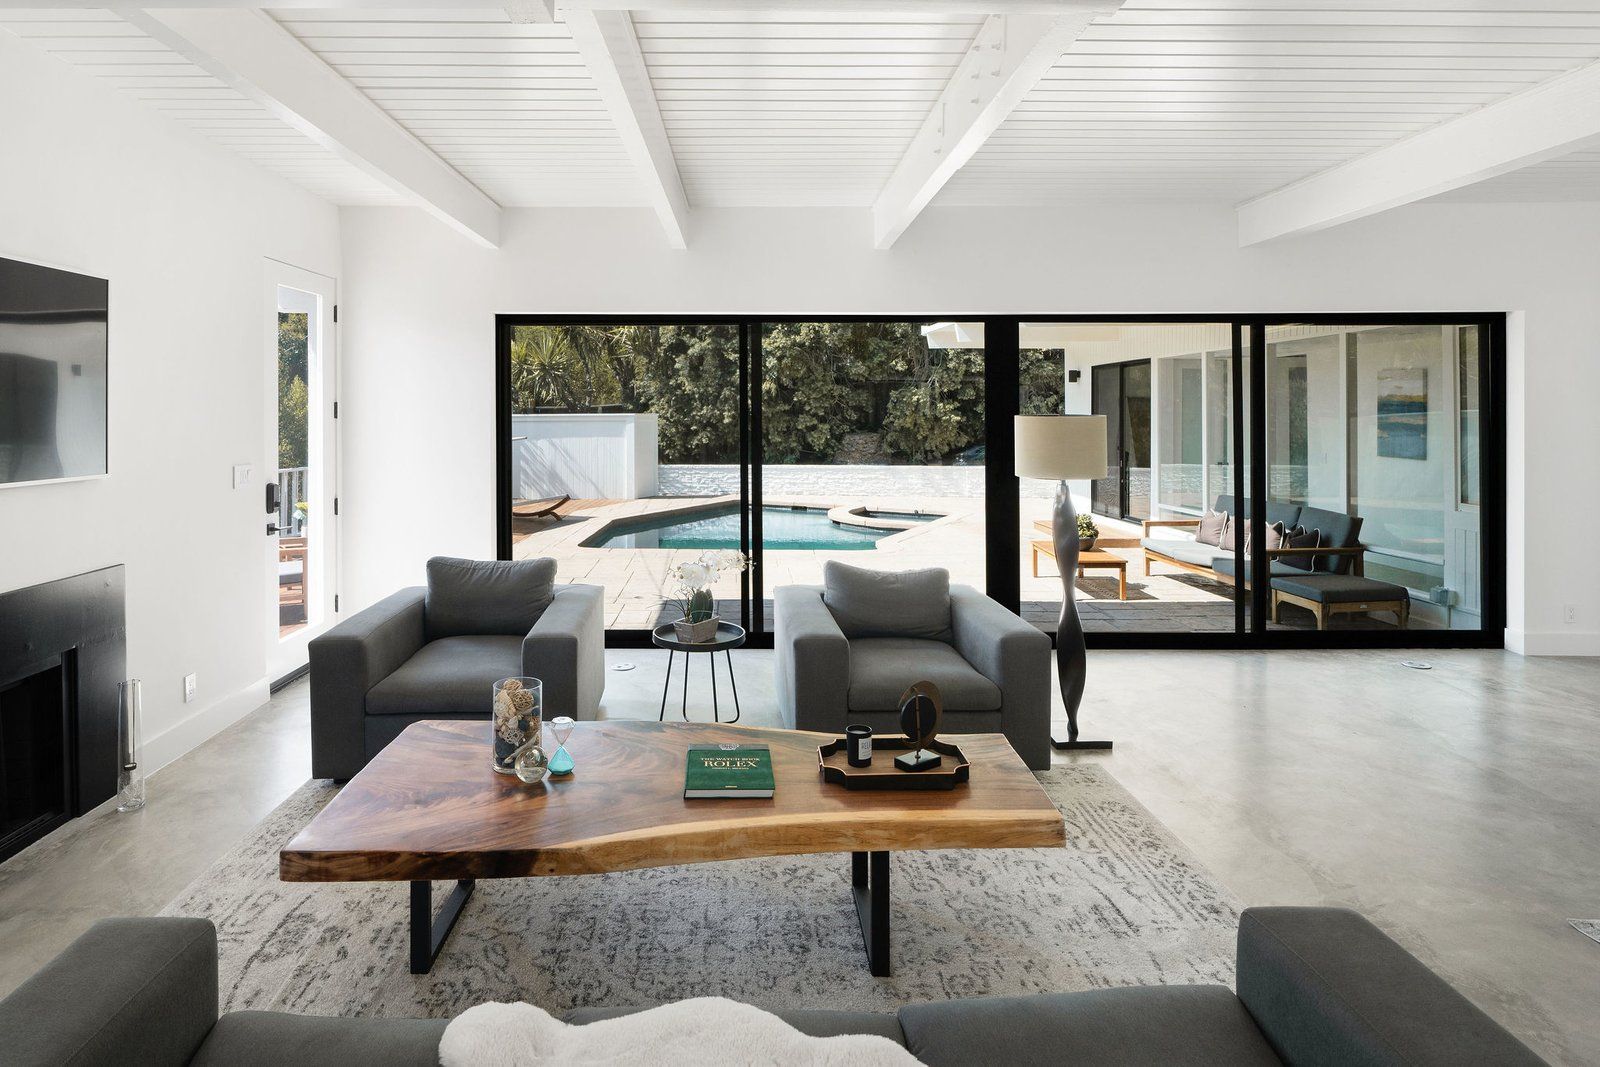 Across the back of the space, a new 22-foot Fleetwood sliding glass door overlooks the covered patio and backyard pool.  Photo 12 of 25 in Before & After: Two Brothers List Their Swanky Midcentury Bachelor Pad for $1.6M